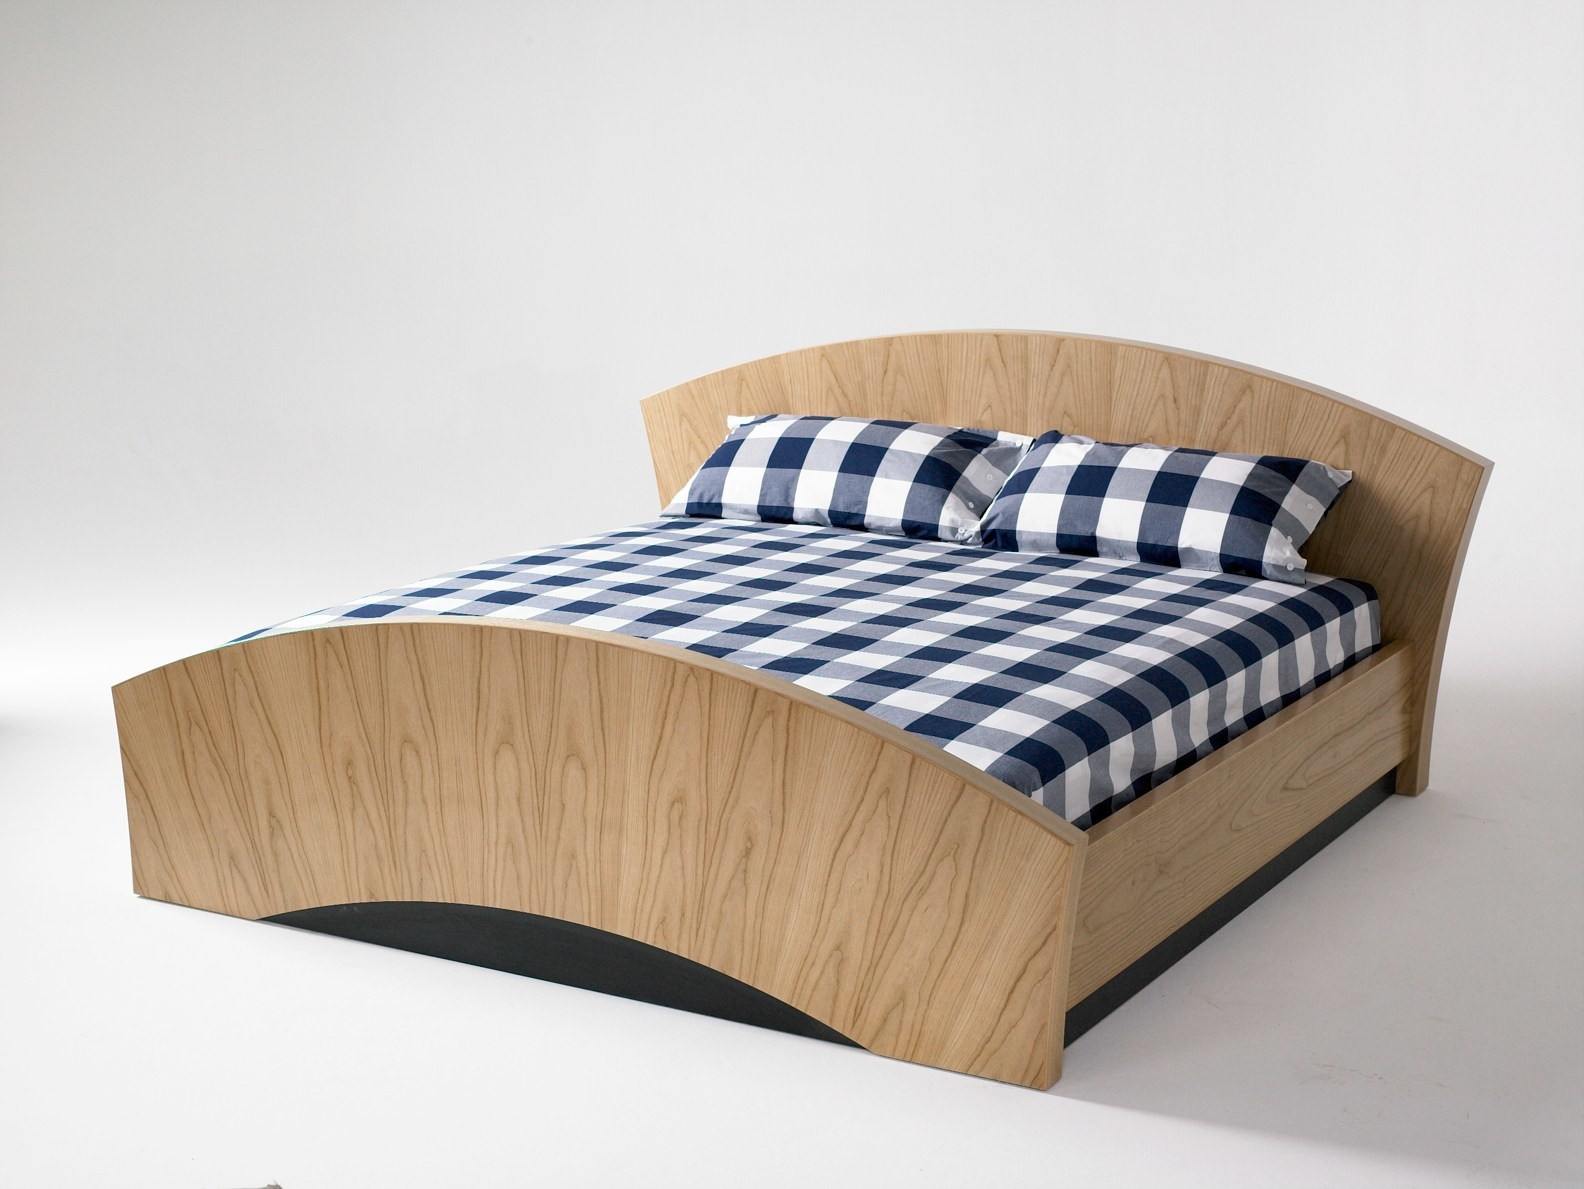 Wood Bed Designs : Bed Designs 2012 4u: Wooden Bed Design